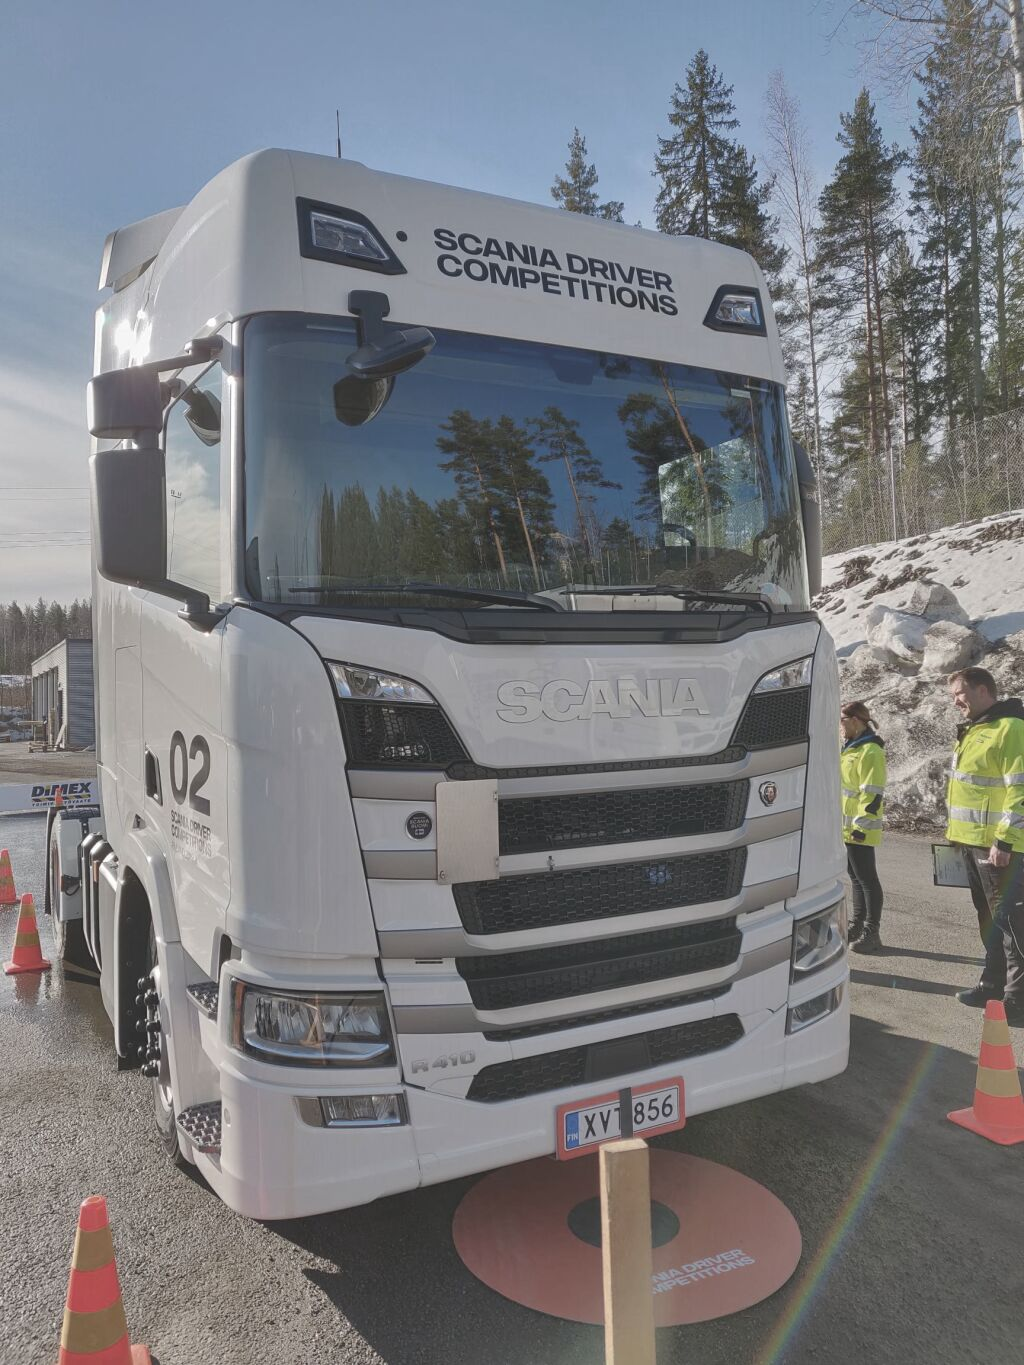 It's all about the driver – Nokian Tyres supports Scania Driver Competitions